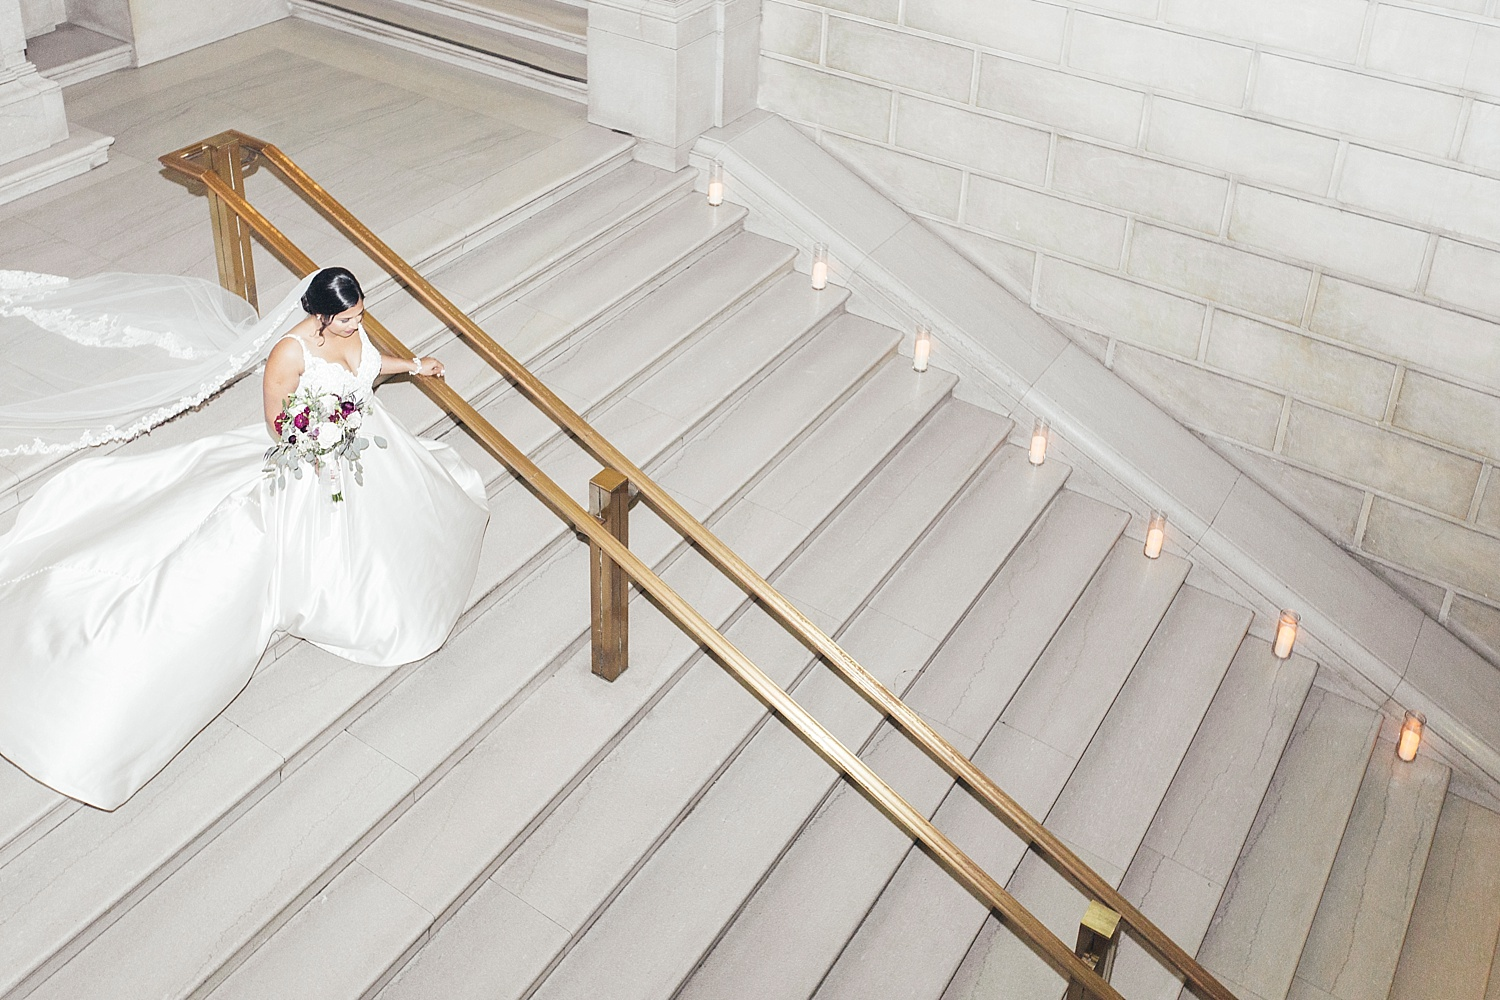 philadelphiaweddingphotographer_47.jpg